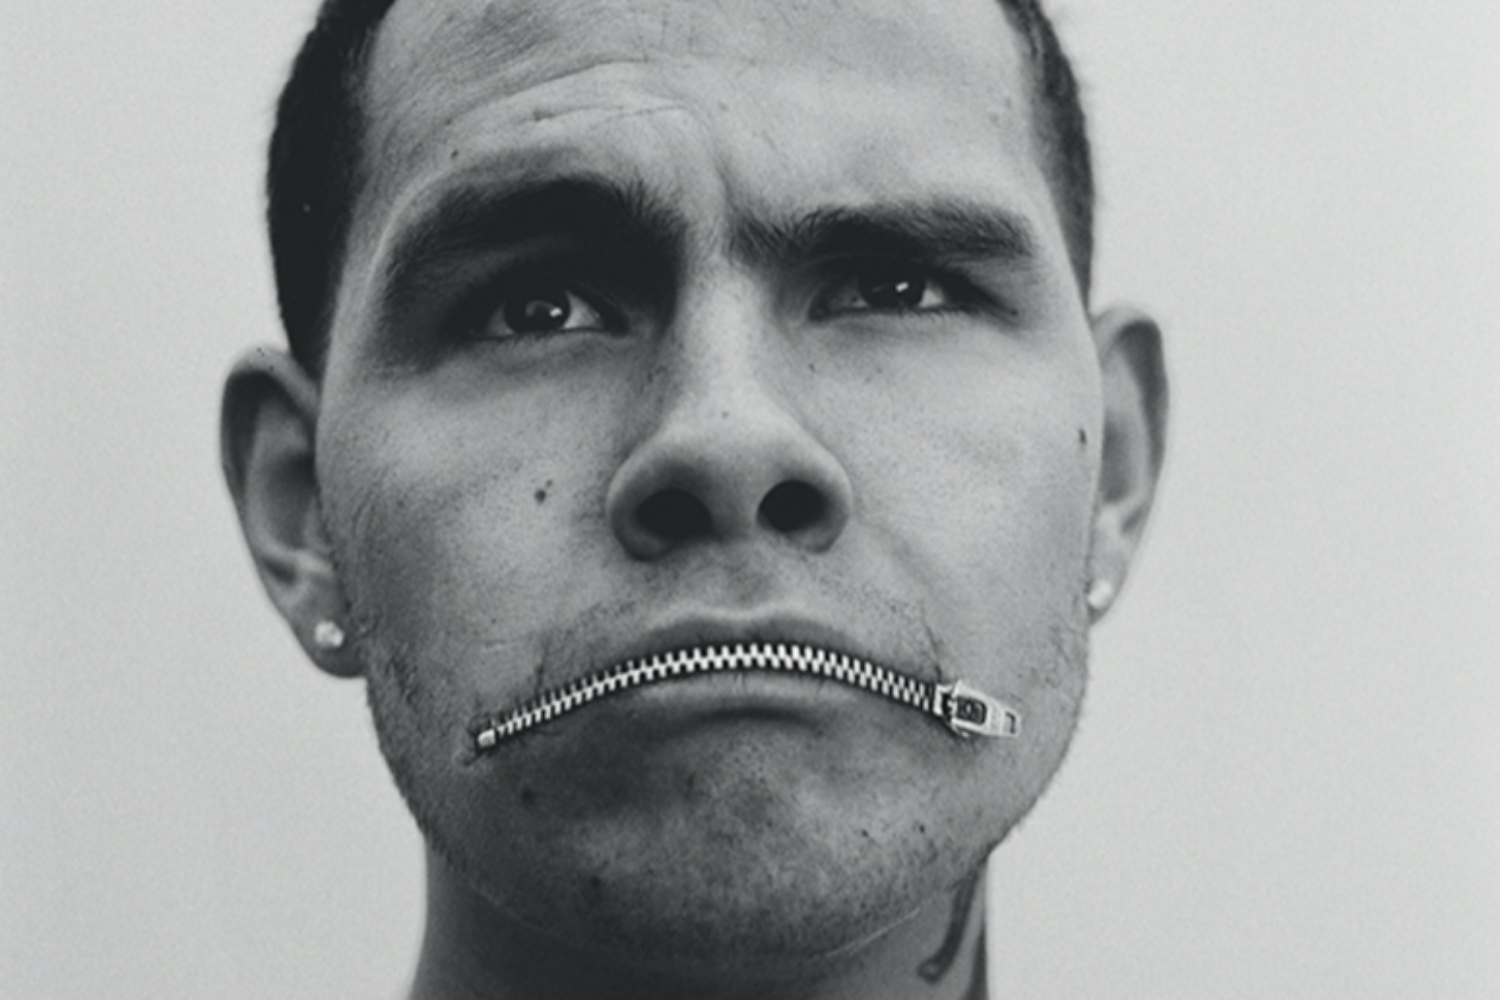 slowthai announces new album 'TYRON'